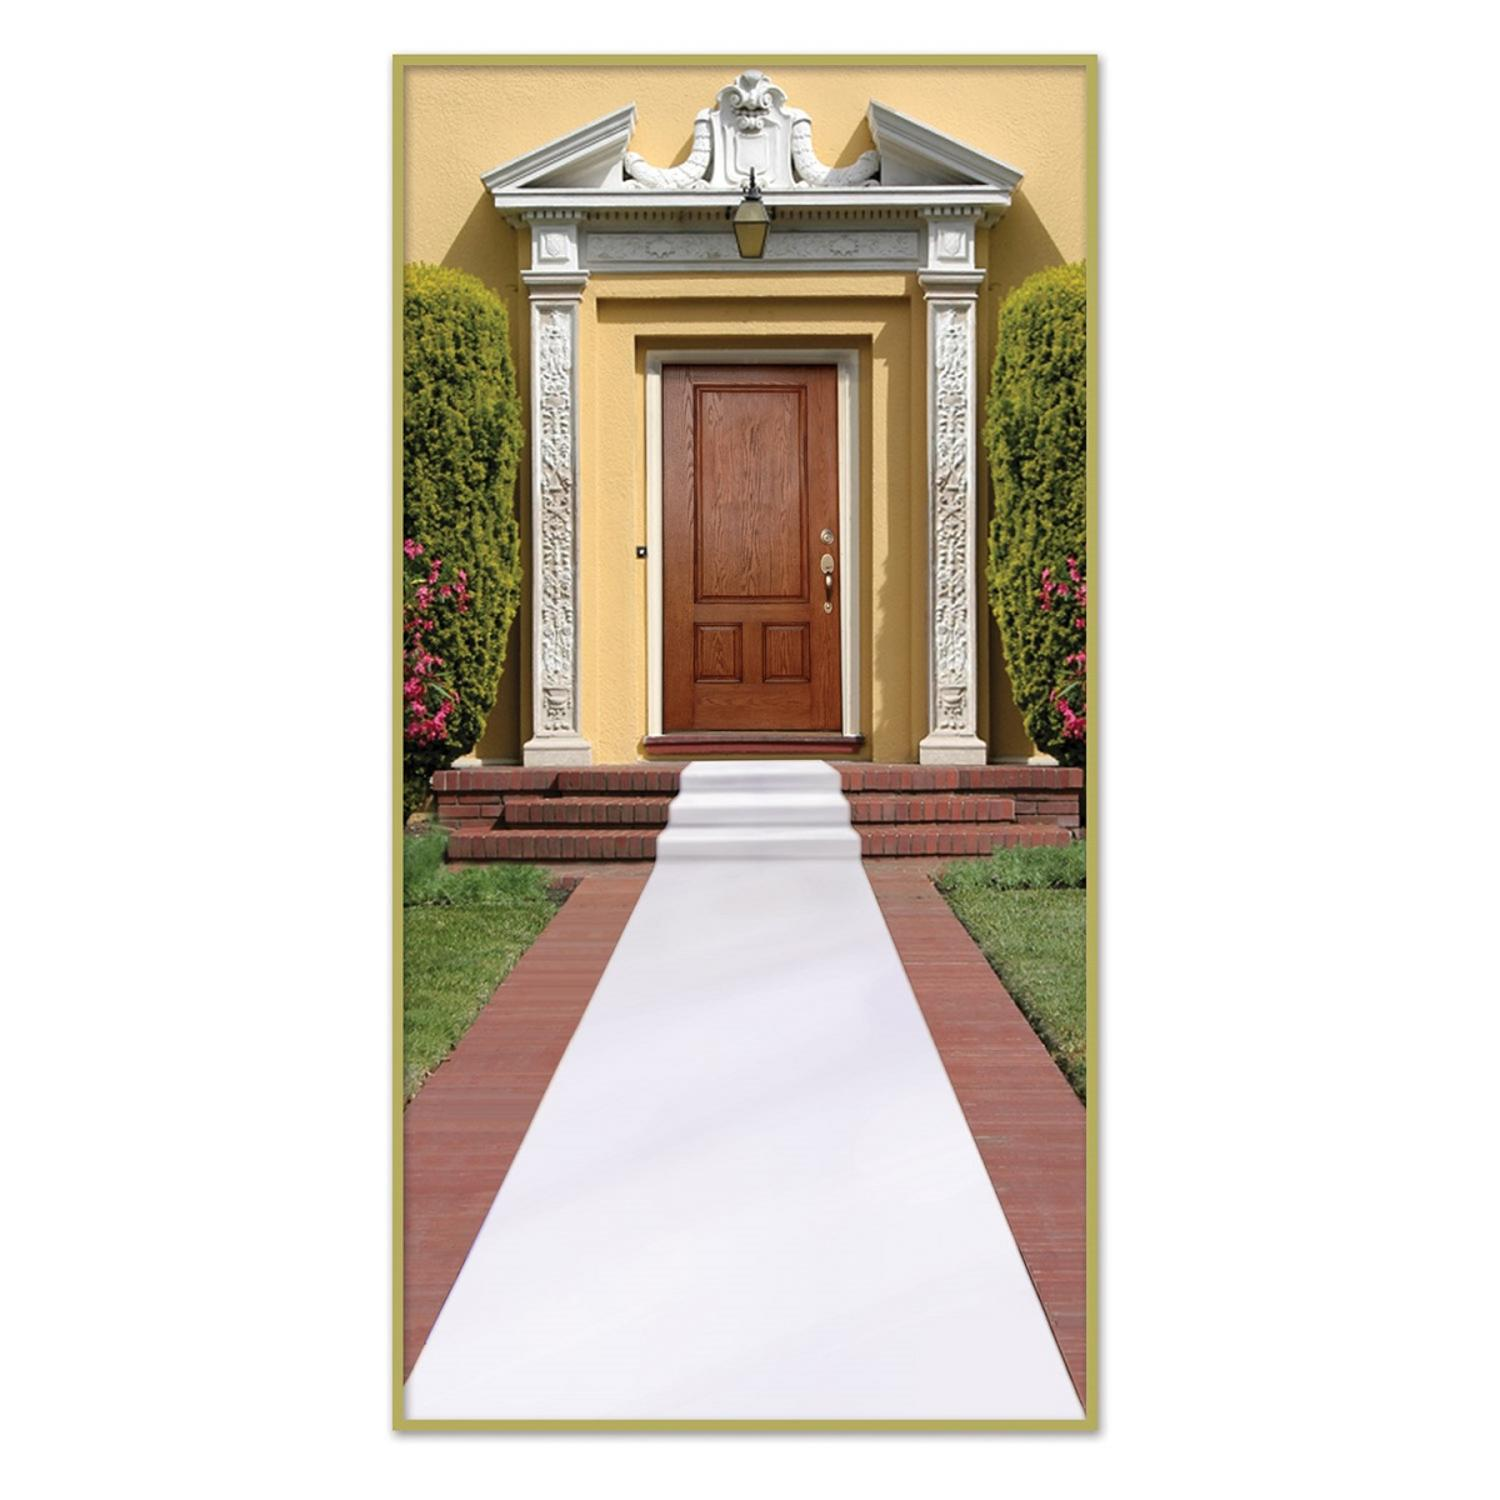 Pack of 6 Wedding Themed White Carpet Runner Party Decorations 15'